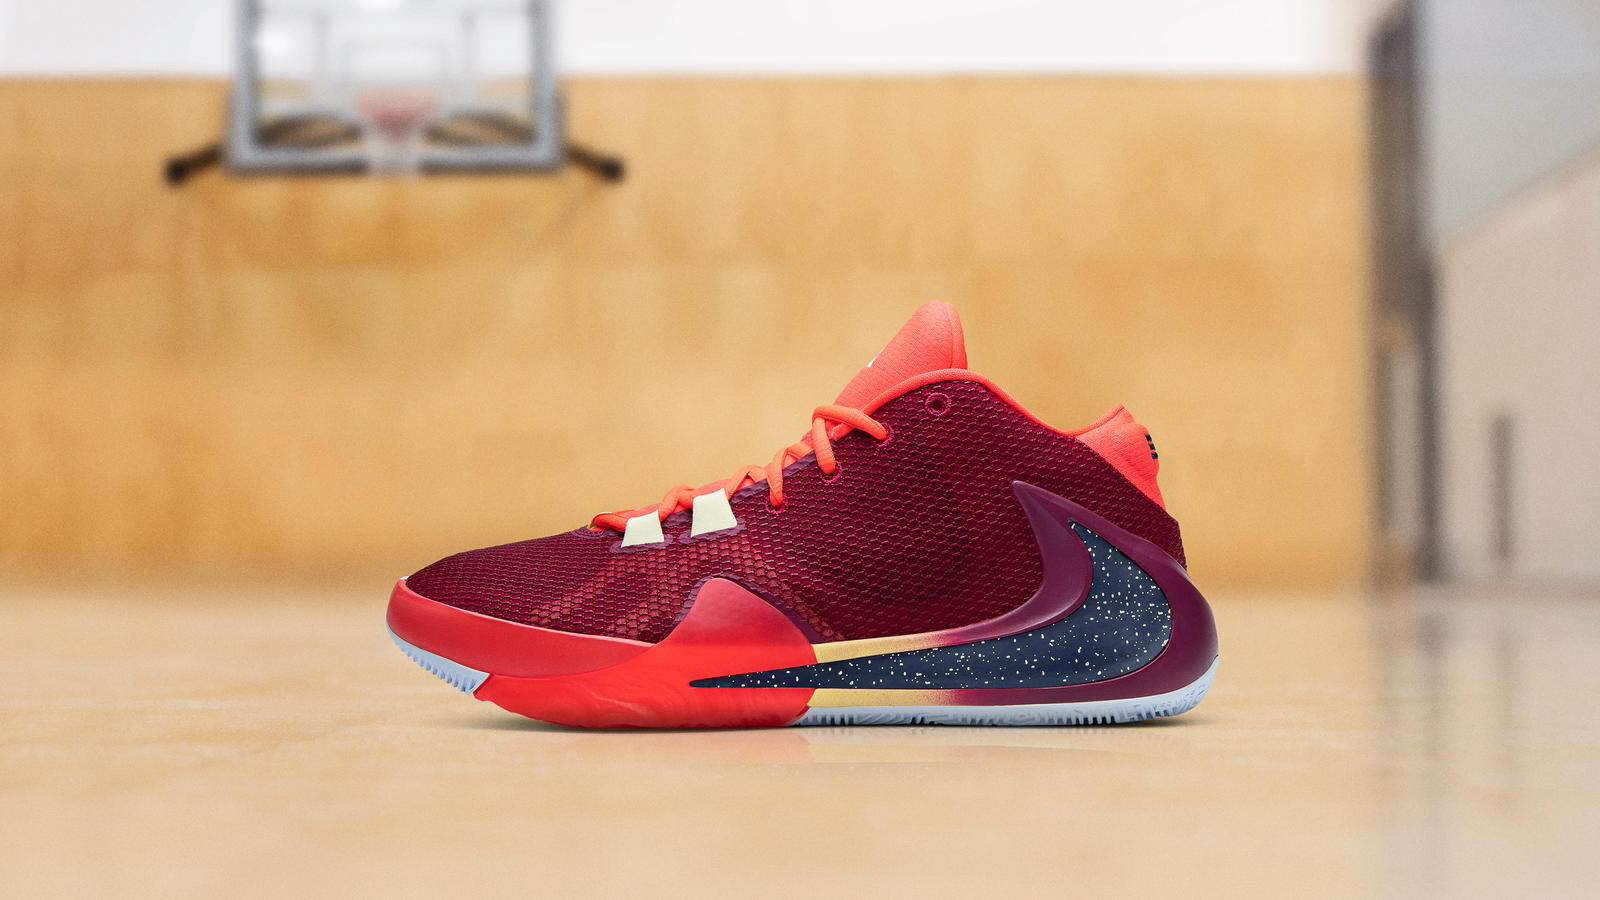 NBA Opening Week 2019-20 KYRIE 5, KD12, PG3, Air Zoom Freak 1 Official Images and Release Dates 11